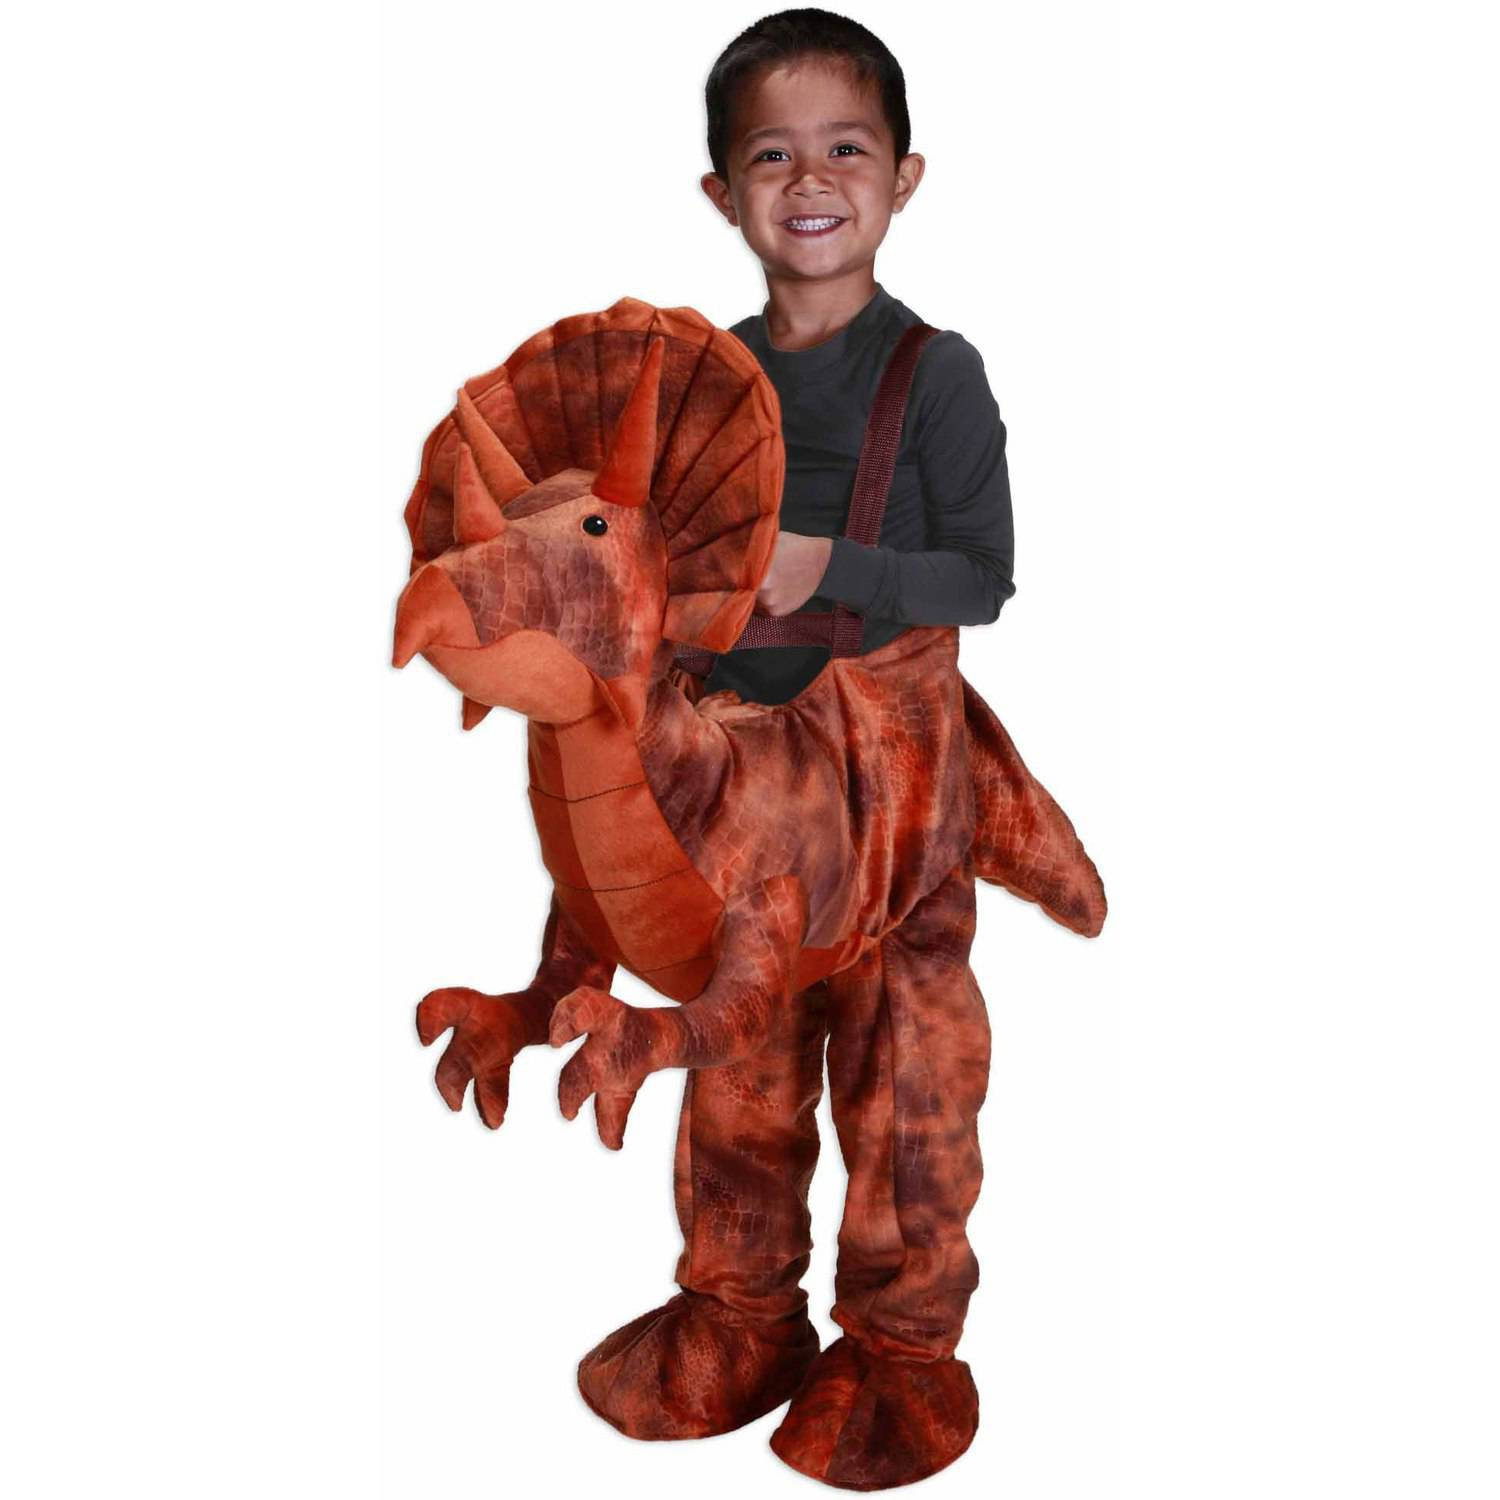 Brown Dino Rider Toddler Halloween Dress Up / Role Play Costume - Walmart.com  sc 1 st  Walmart & Brown Dino Rider Toddler Halloween Dress Up / Role Play Costume ...